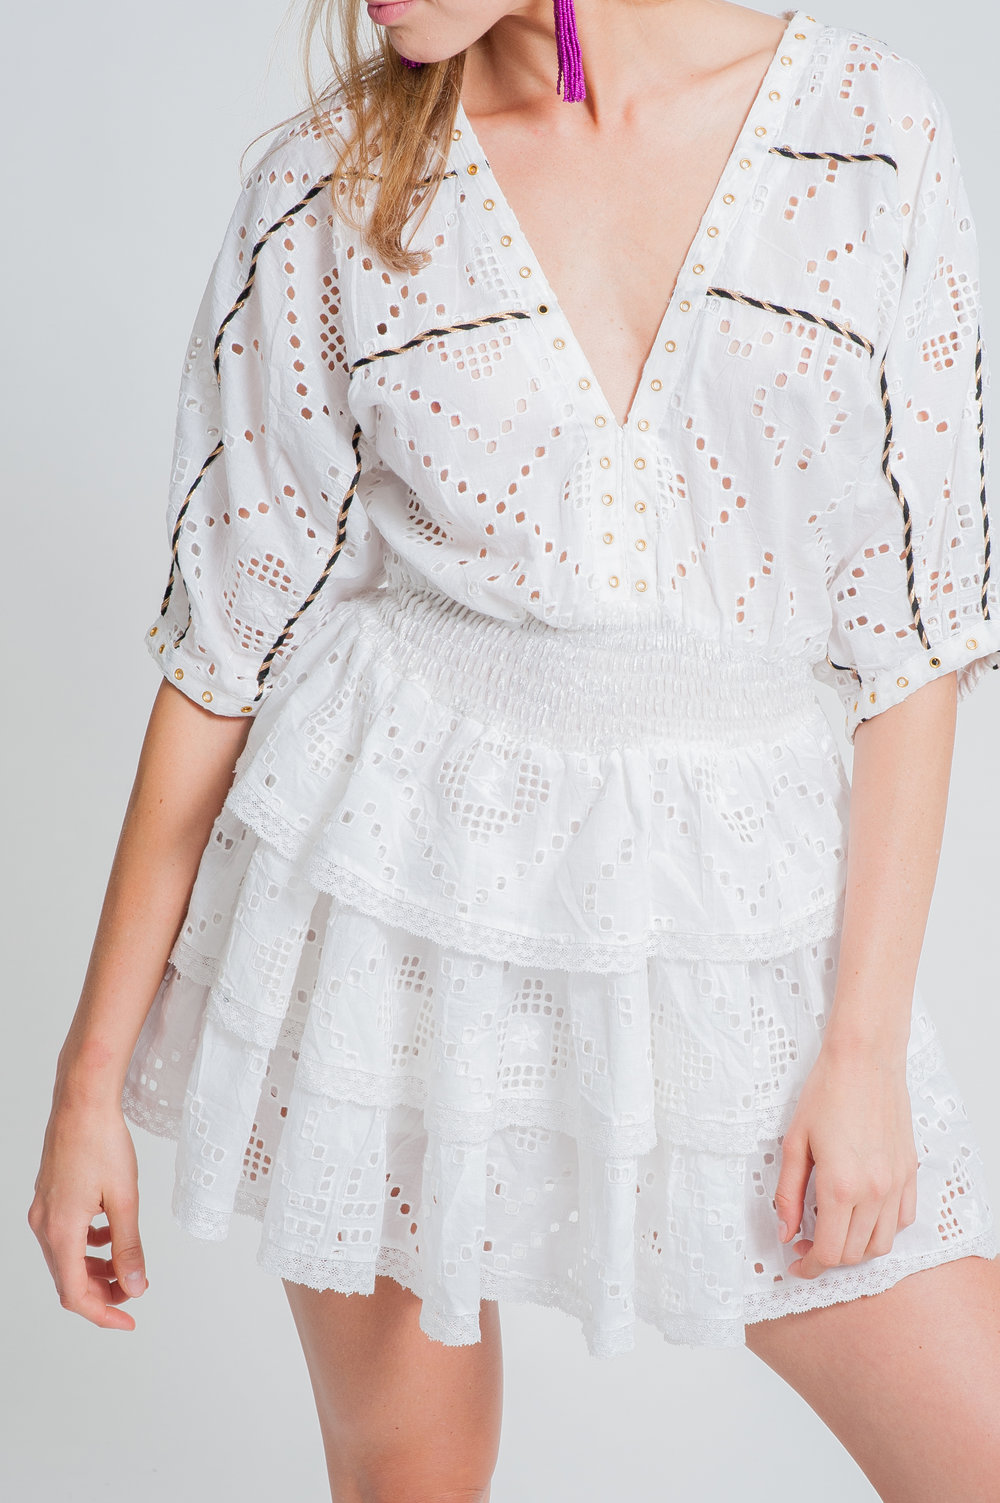 SS19-33 LE CASTEL MINI CUTWORK LACE TIERED MINI DRESS